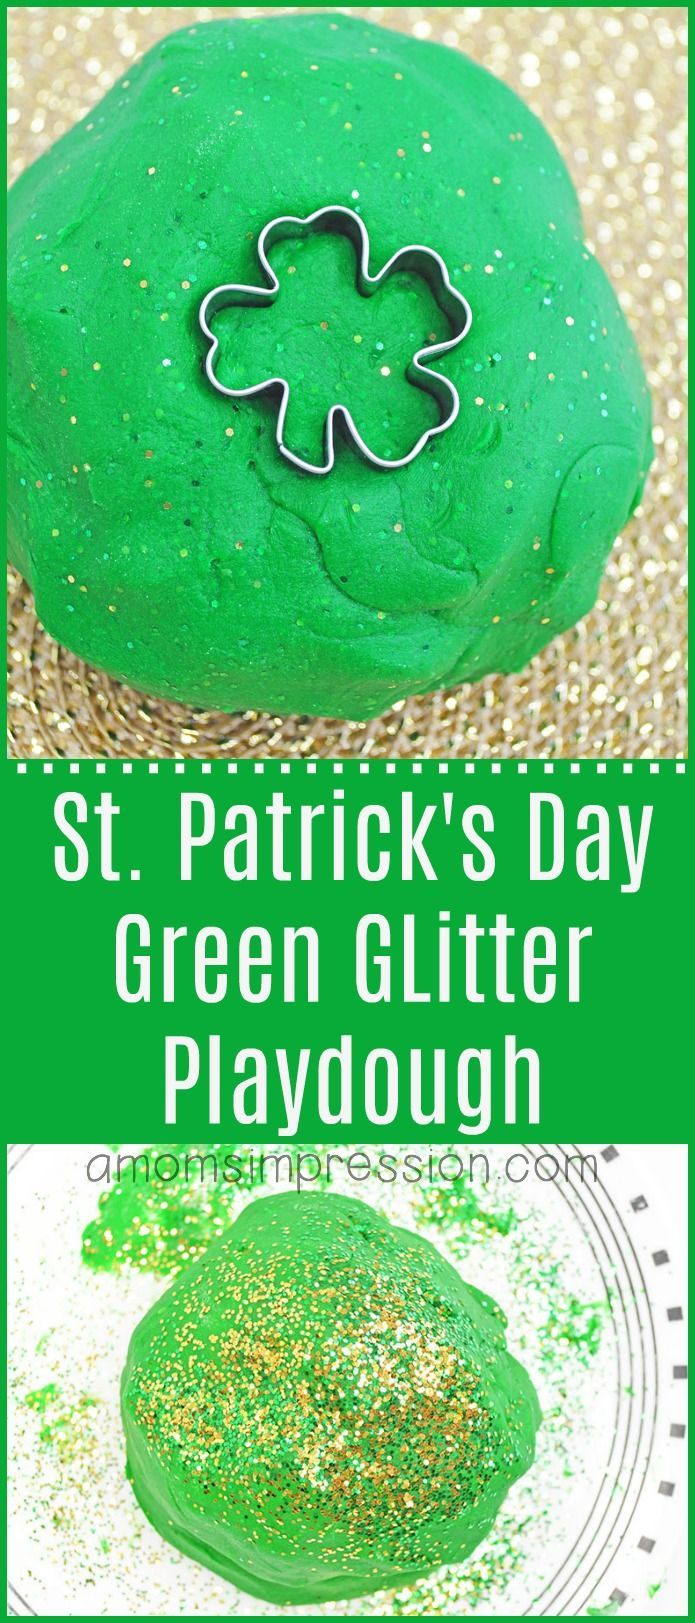 DIY Craft: Make this fun homemade St. Patrick's Day playdough recipe for your kids. Glitter playdough is an easy and fun activity to DIY with your toddler. They can create and let their imaginations go wild! <a class=